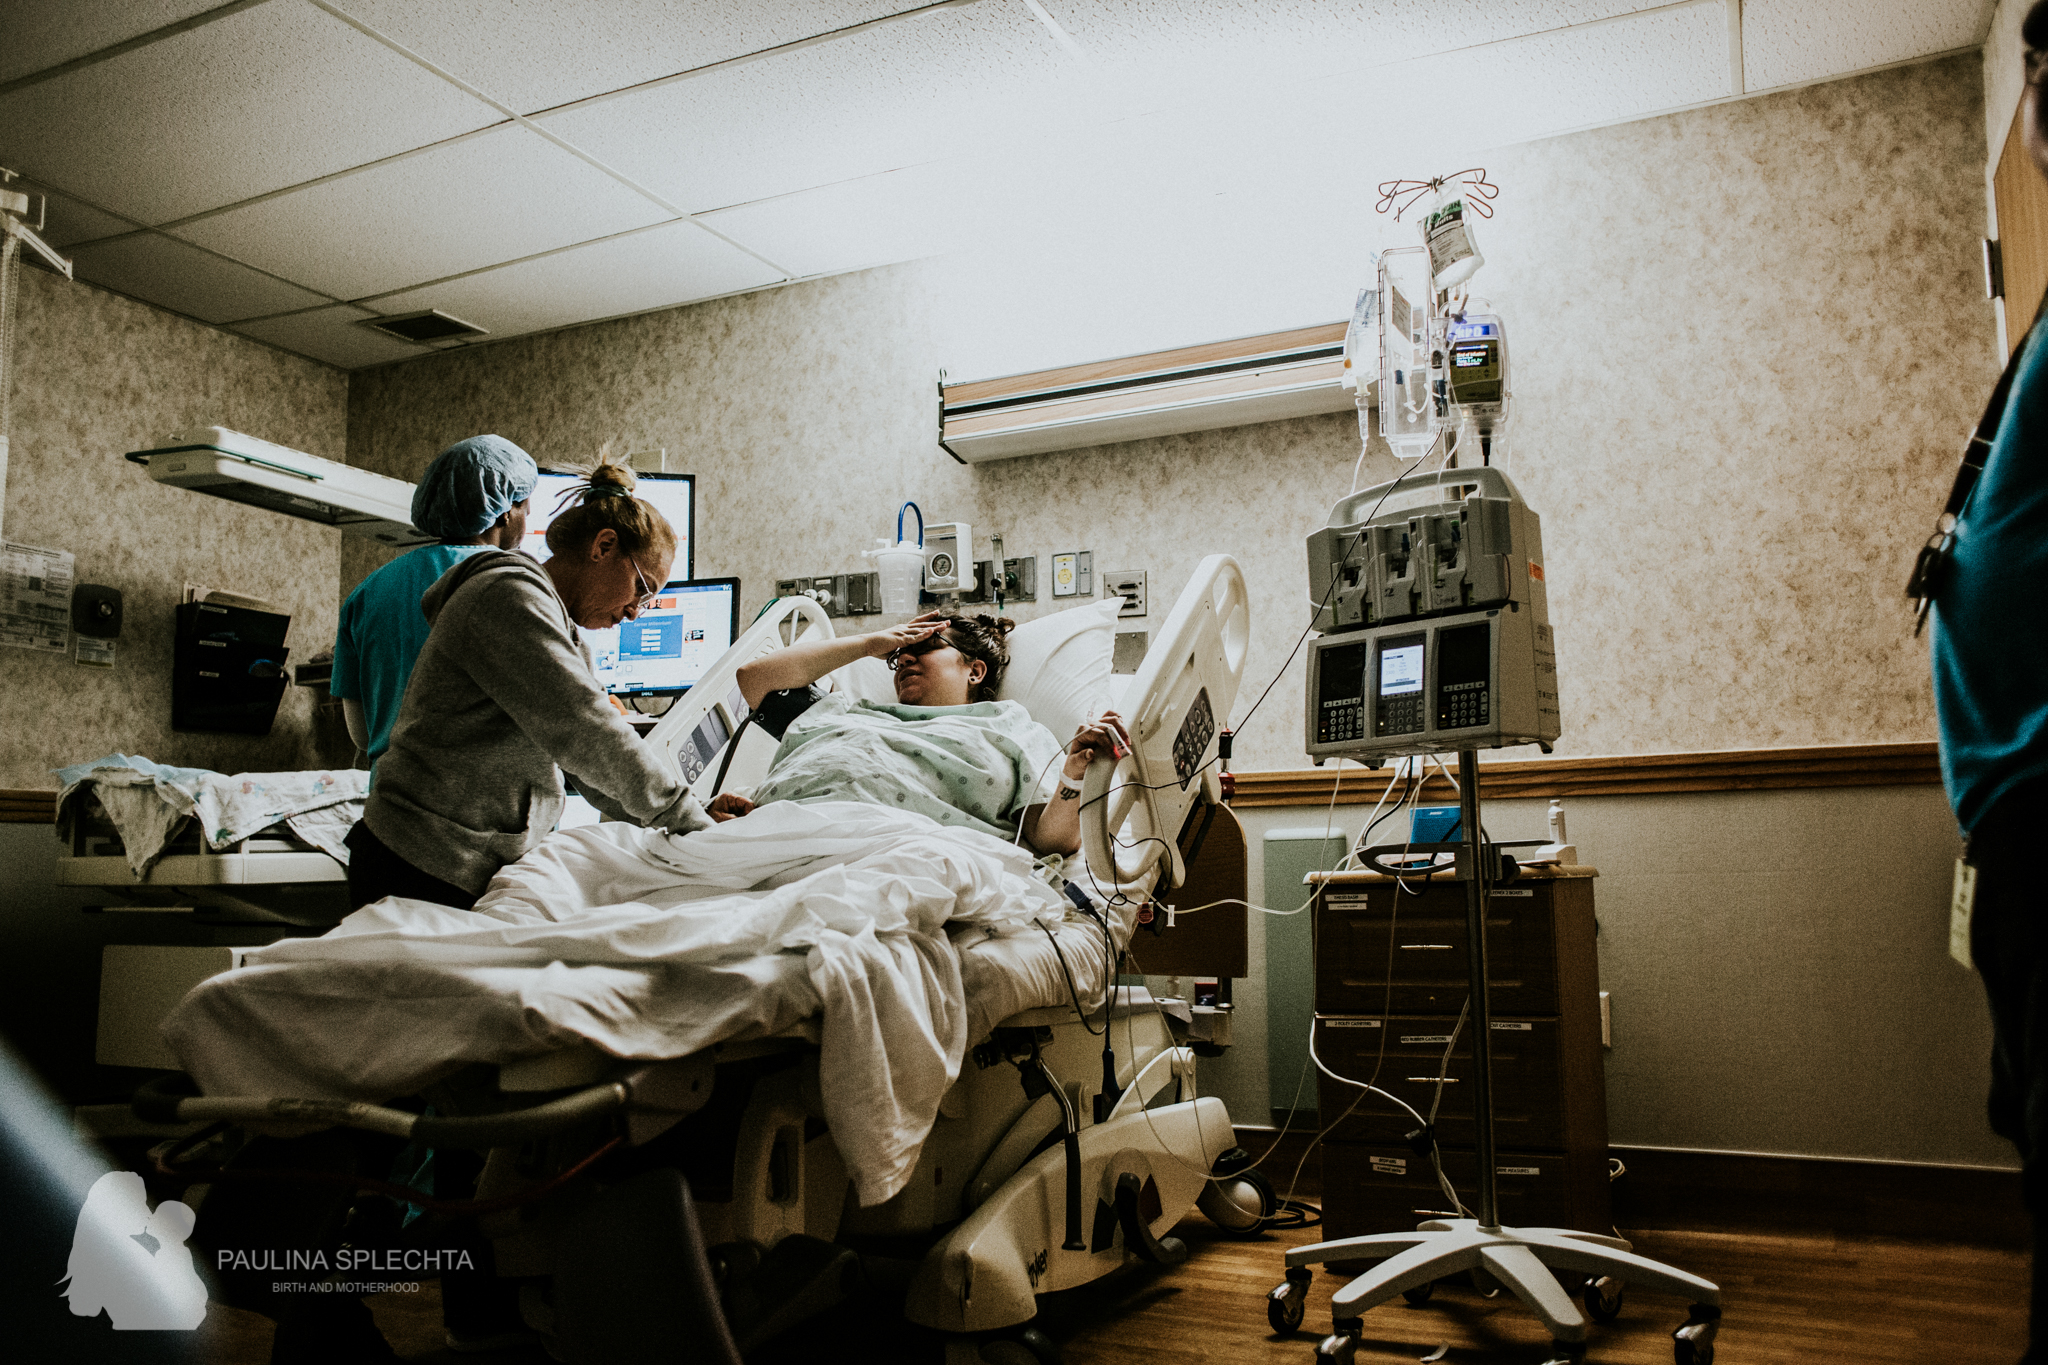 coral springs medical center maternity labor delivery royal palm obgyn-6.jpg